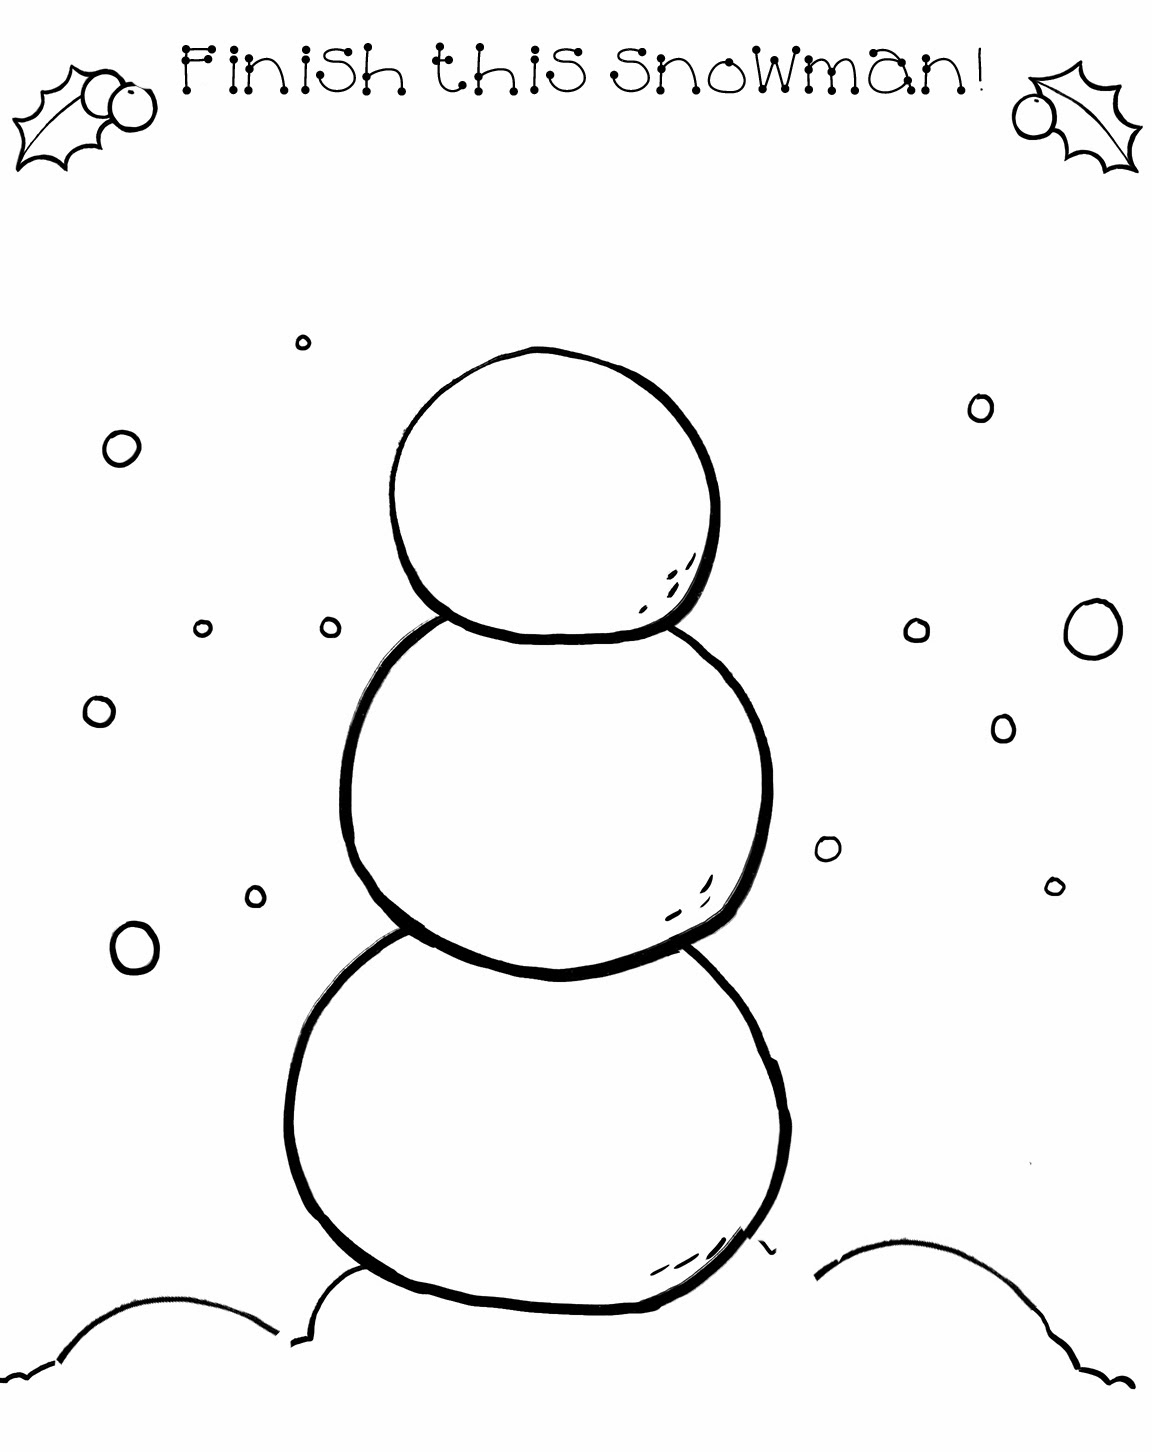 Search Results For Lined Snowman Body Template